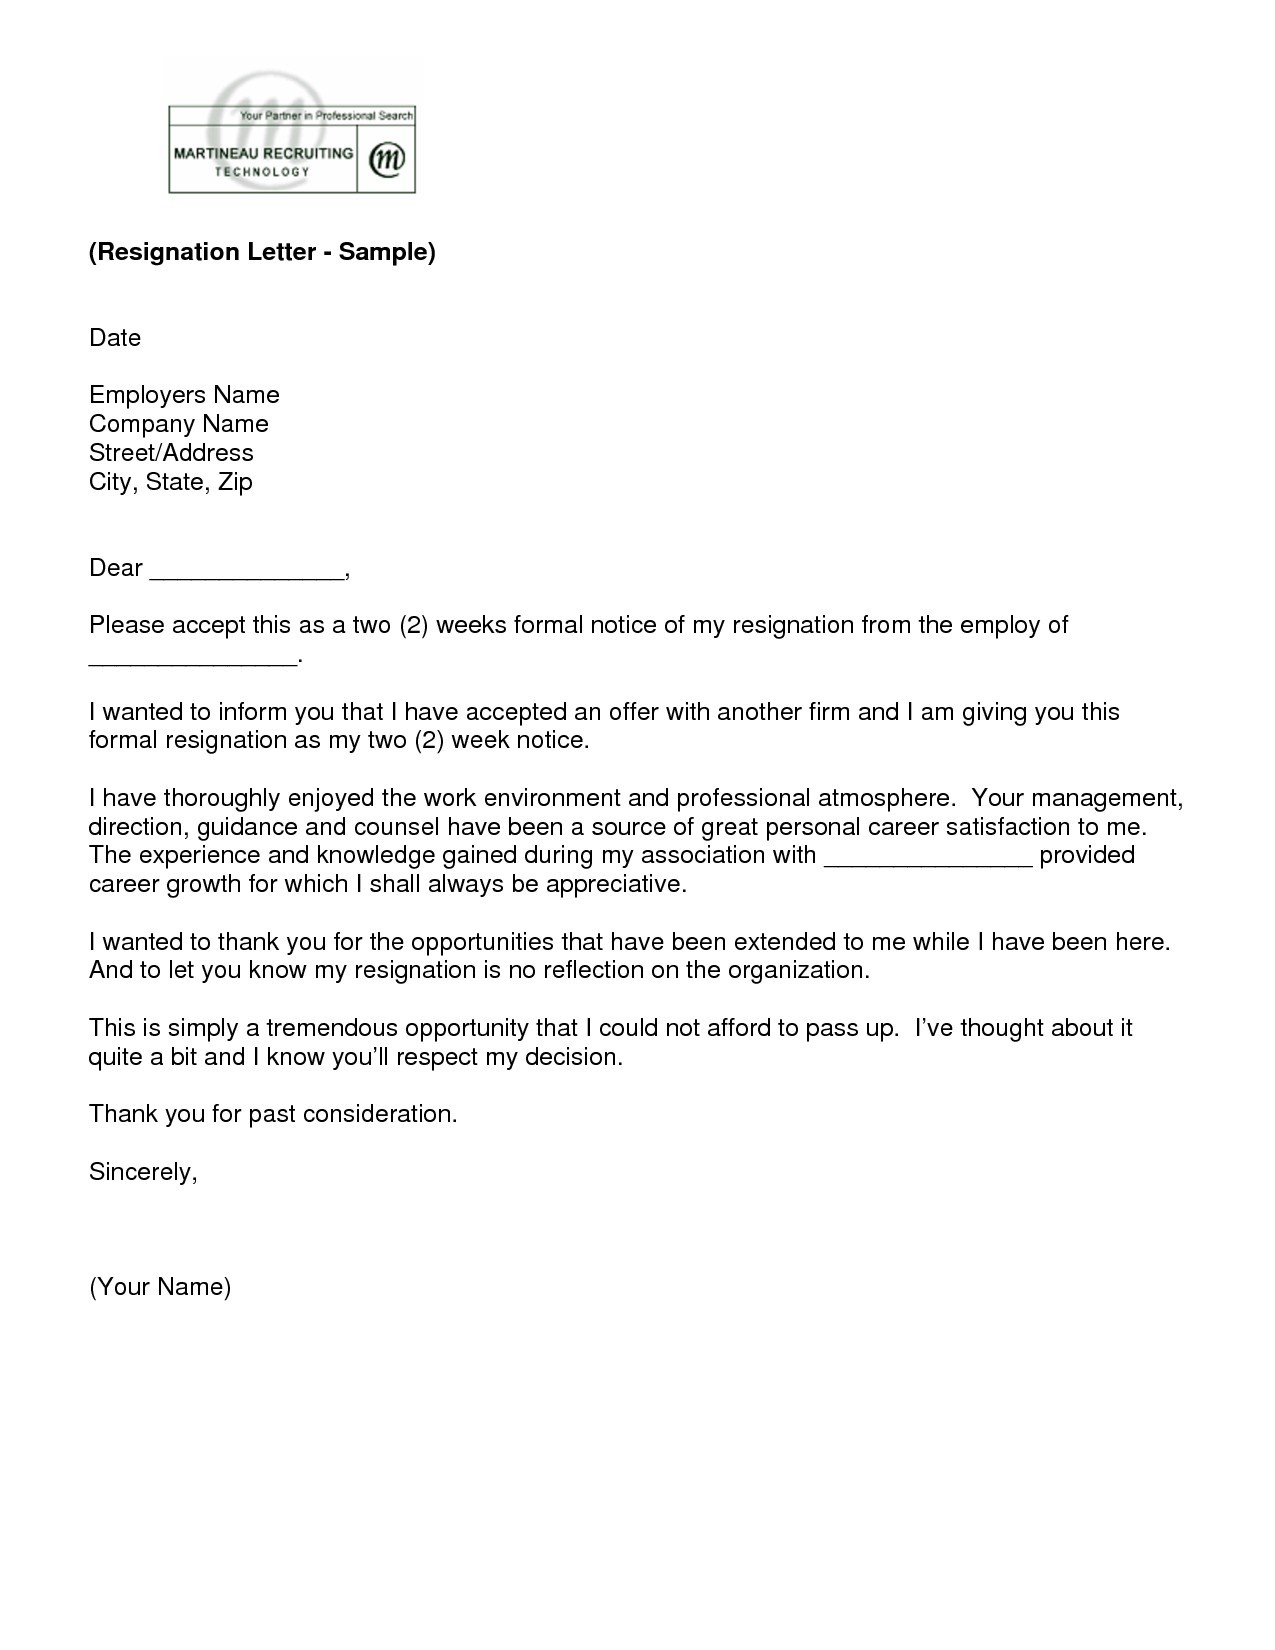 Letter Of Resignation Letter Template - Job Notice Letter Sample Refrence Resignation Letter Sample with